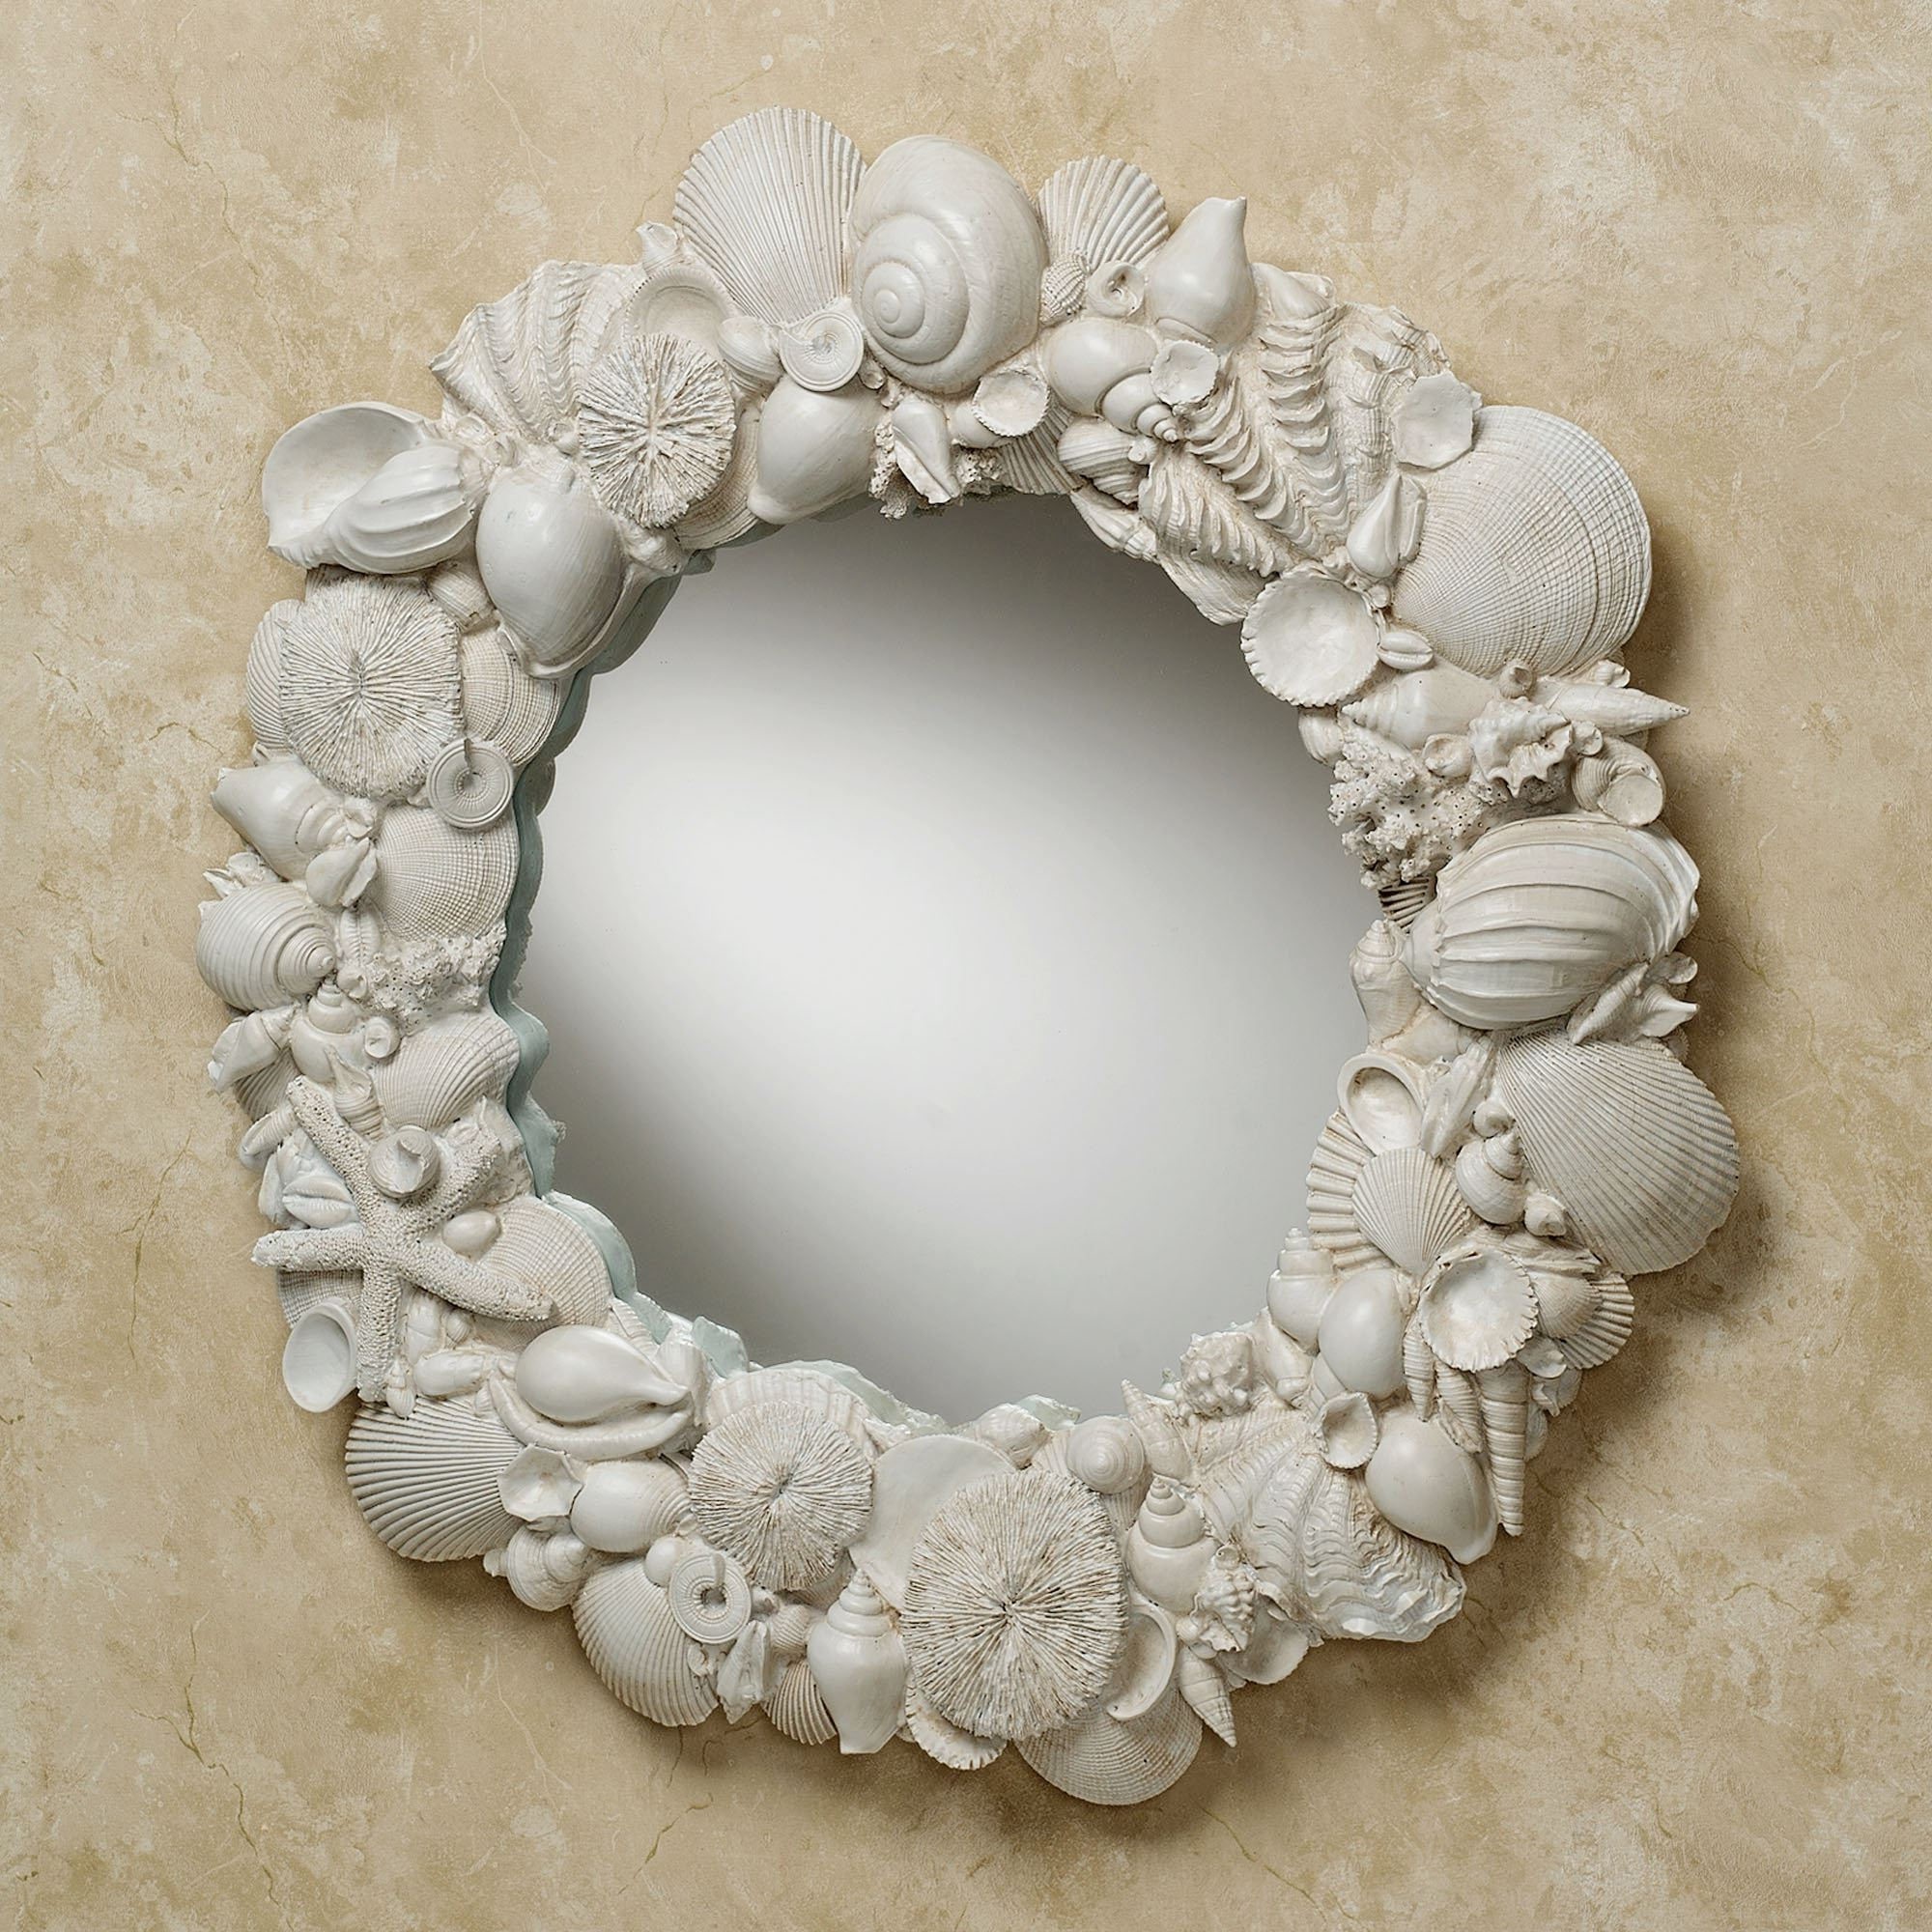 Most Recent Seashell Melange Round Coastal Wall Mirror Intended For Coastal Style Wall Mirrors (View 15 of 20)